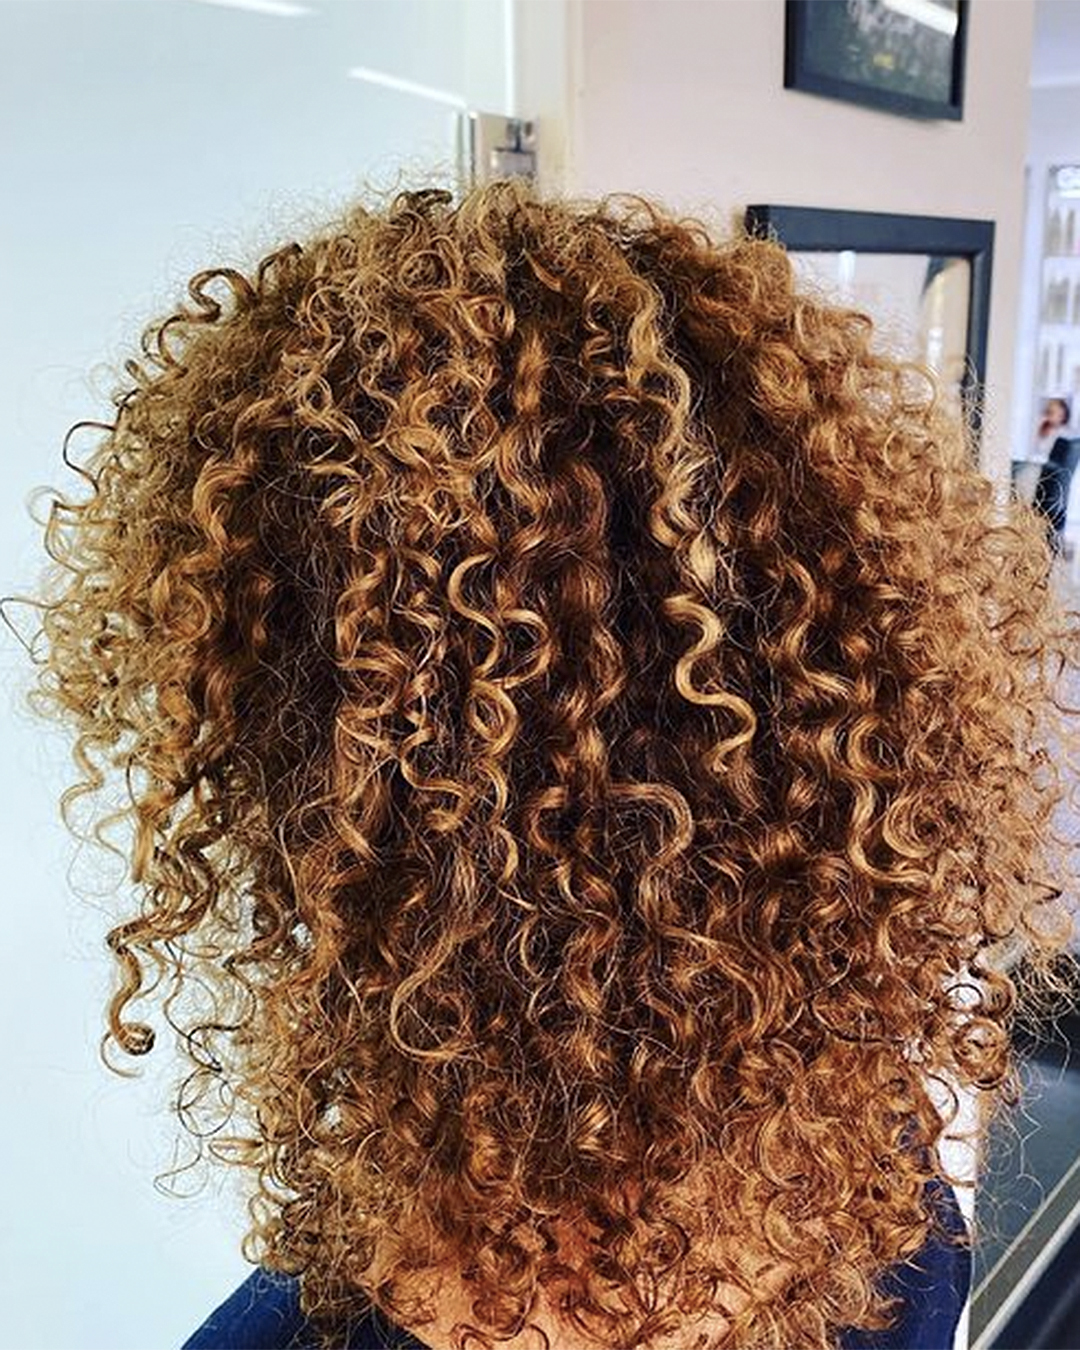 A woman with curly hair.